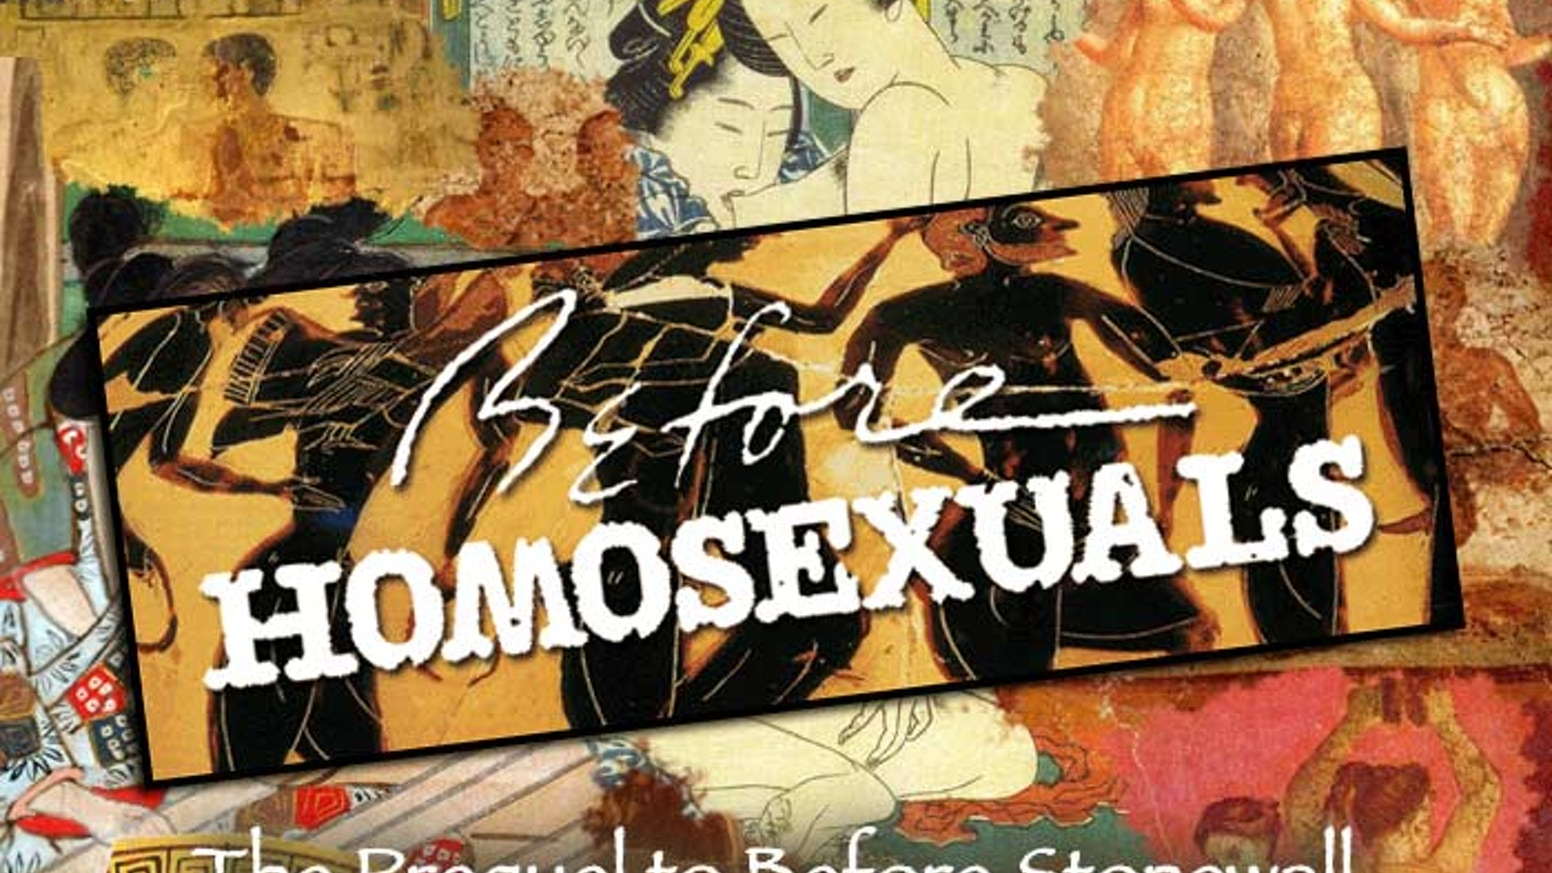 A feature-length documentary on same-sex history from ancient Egypt to 1900 AD, featuring rediscovered works of art and poetry. Released to the public on June 11, 2019. Click on the link below to watch the film!